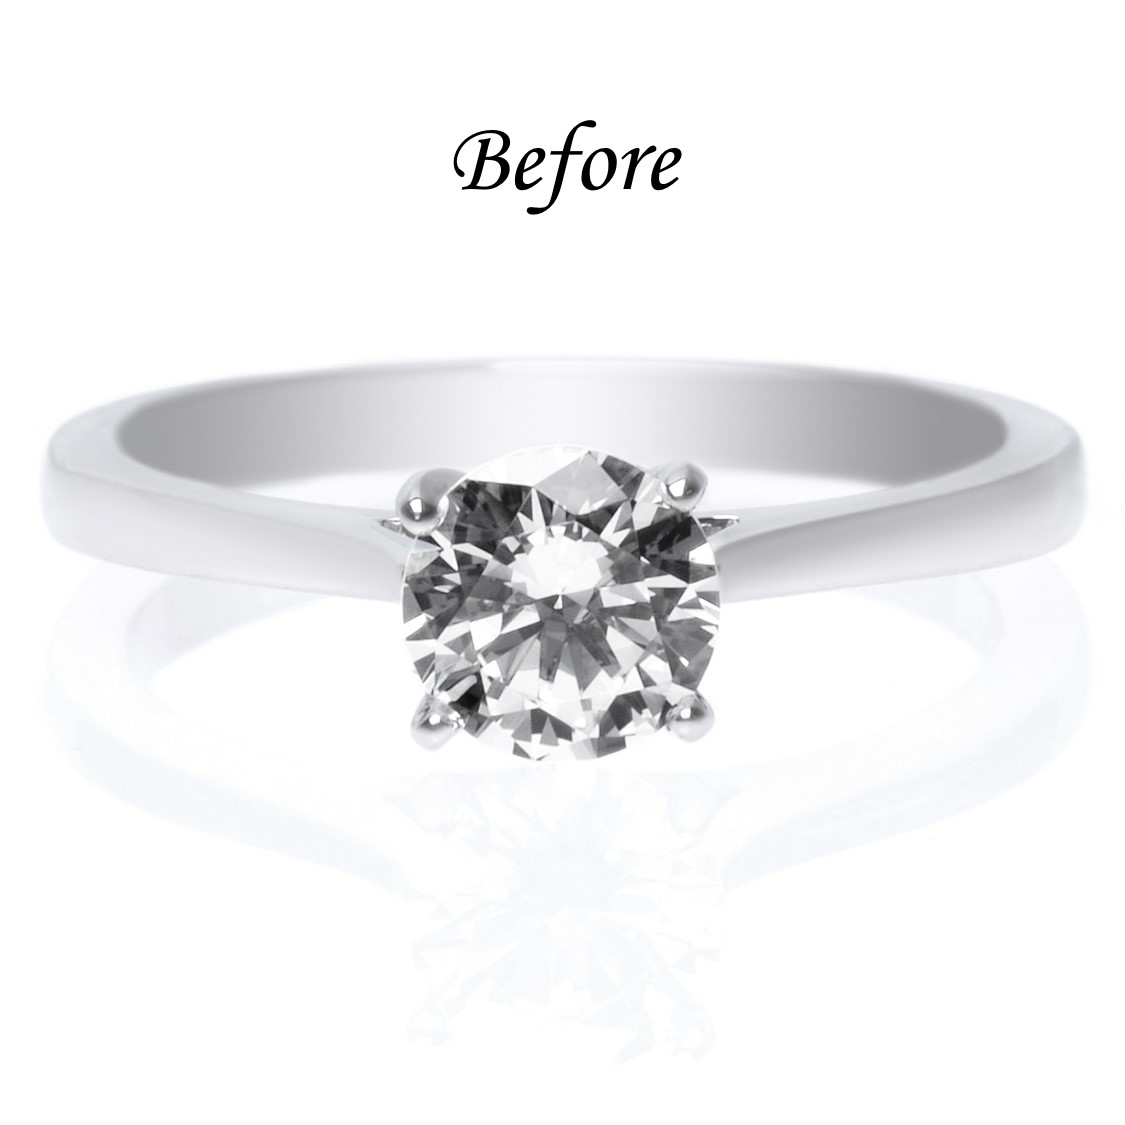 6 Ways To Reset Your Solitaire Engagement Ring - Original Before Ring